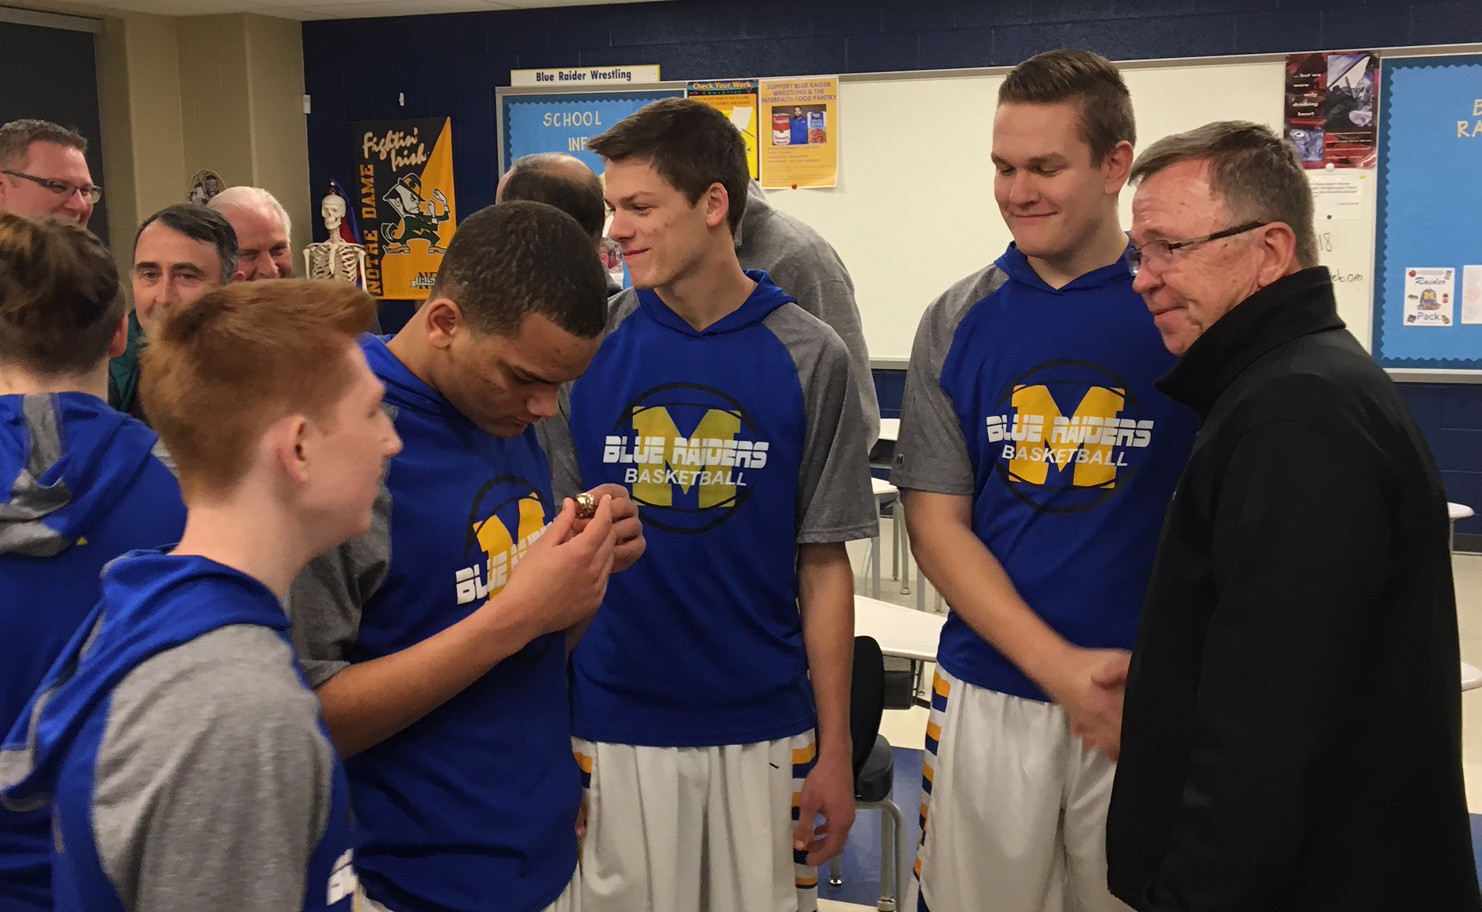 Middletown basketball players Jerrod Myers, Antonio Gamble, David Alcock and Mitch Lee examine the NBA championship ring of Dave Twardzik, right, before Friday's Blue Raiders game vs. West Perry. Twardzik, who won a title as a member of the 1977 Portland Trailblazers, was a member of the 1968 MAHS state championship basketball team that was honored at halftime.